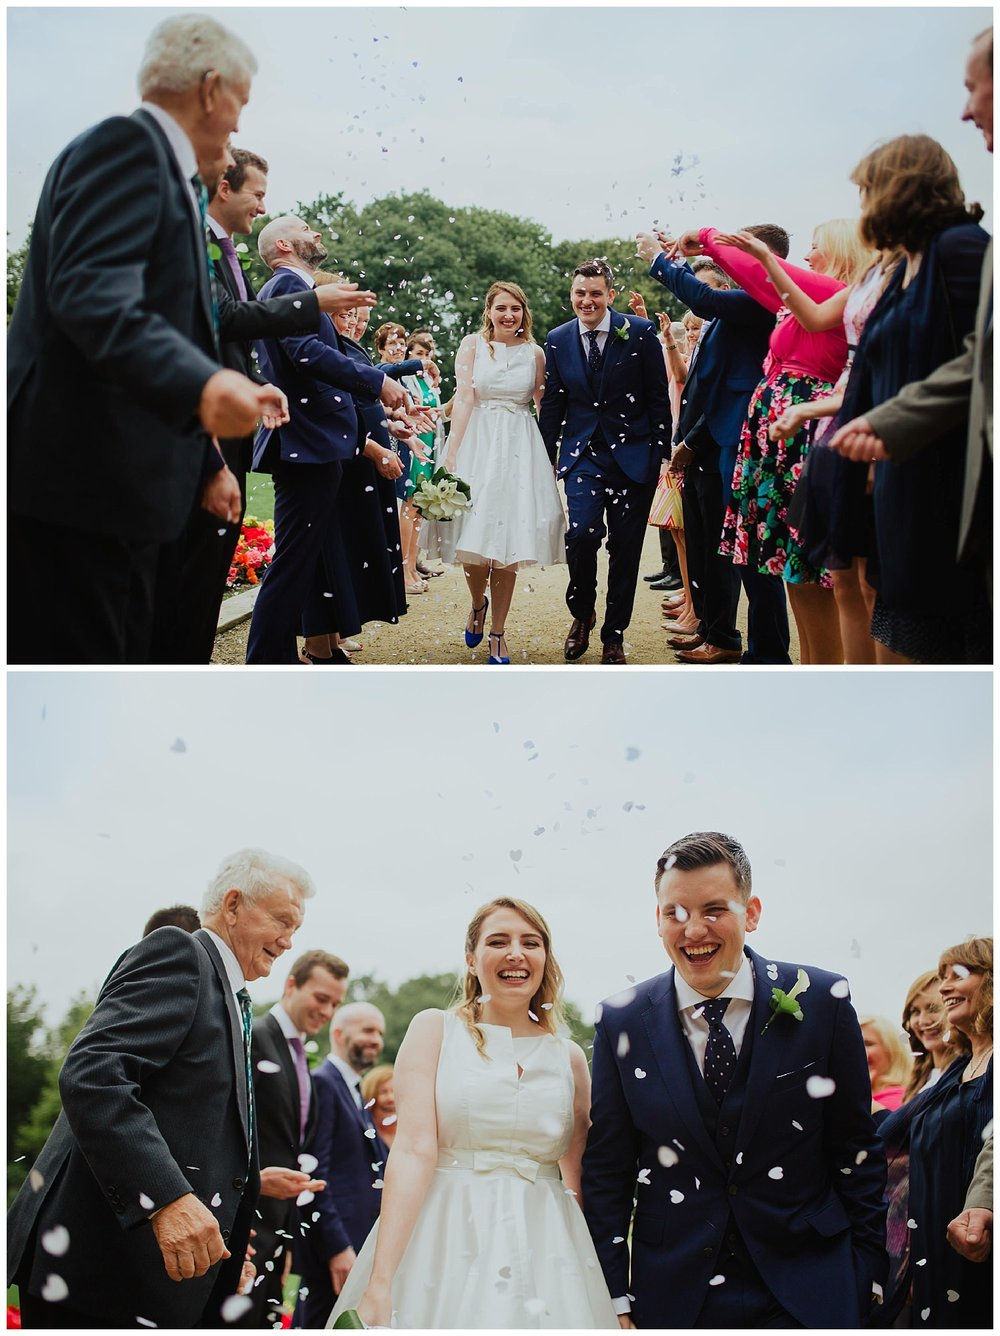 medley_dublin_city_wedding_photographer_2017_13.jpg